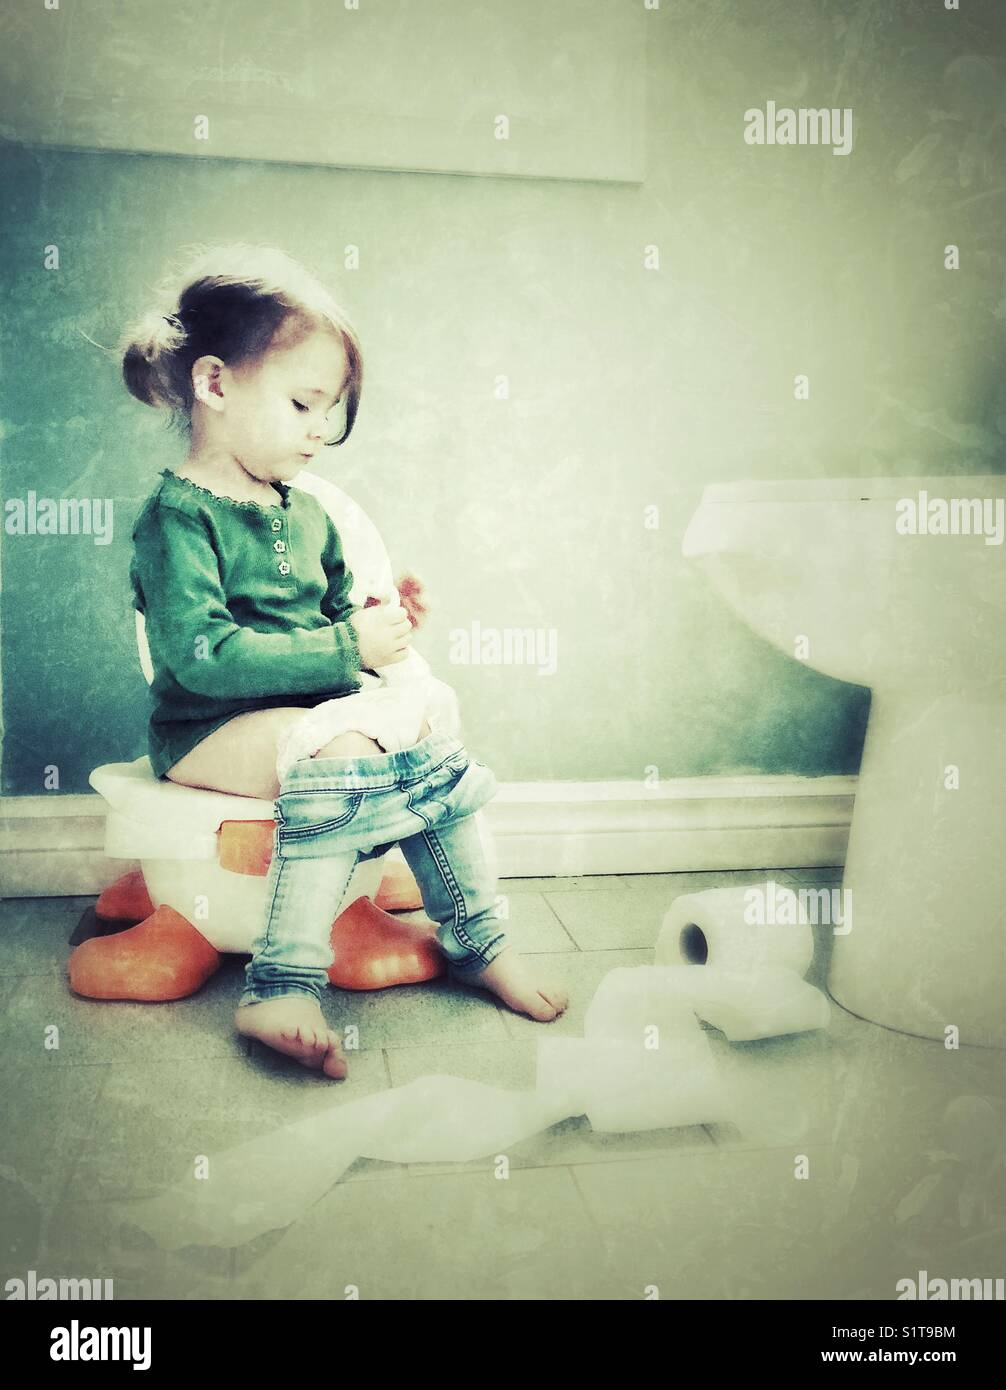 Toddler girl playing with toilet paper while potty training - Stock Image